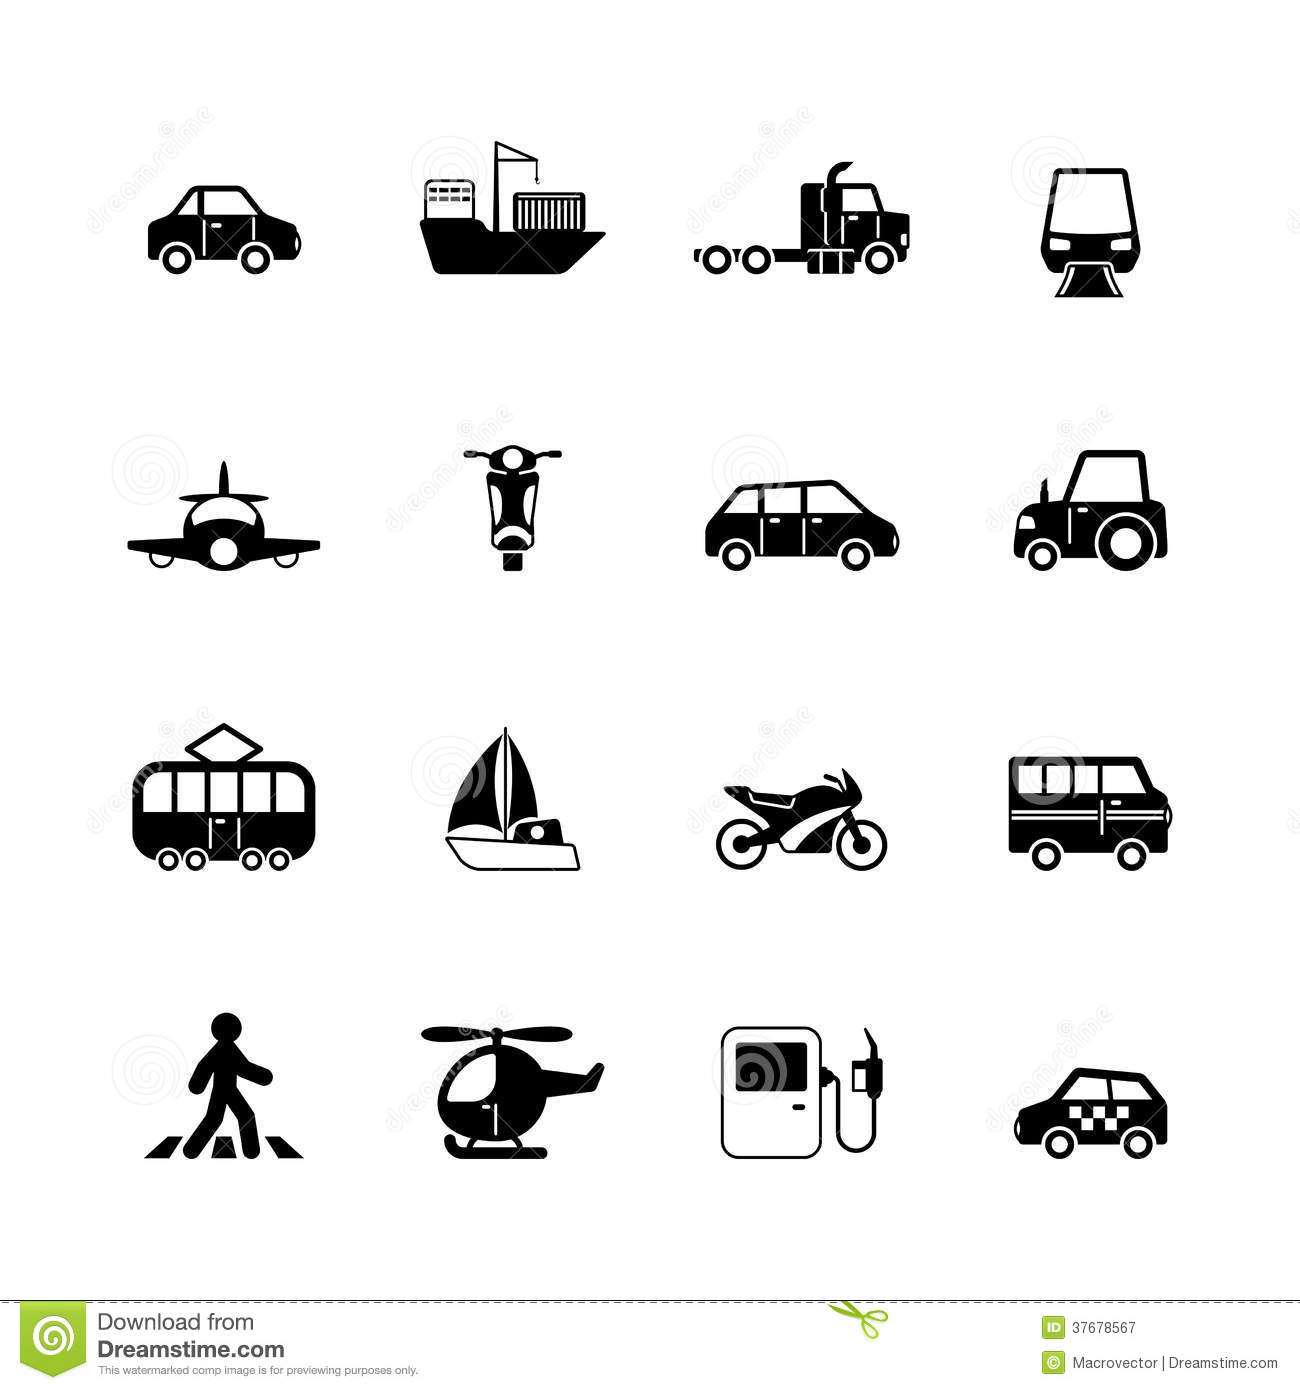 Photographie Stock Libre De Droits Collection De Pictogrammes De Transport Image37678567 on ments